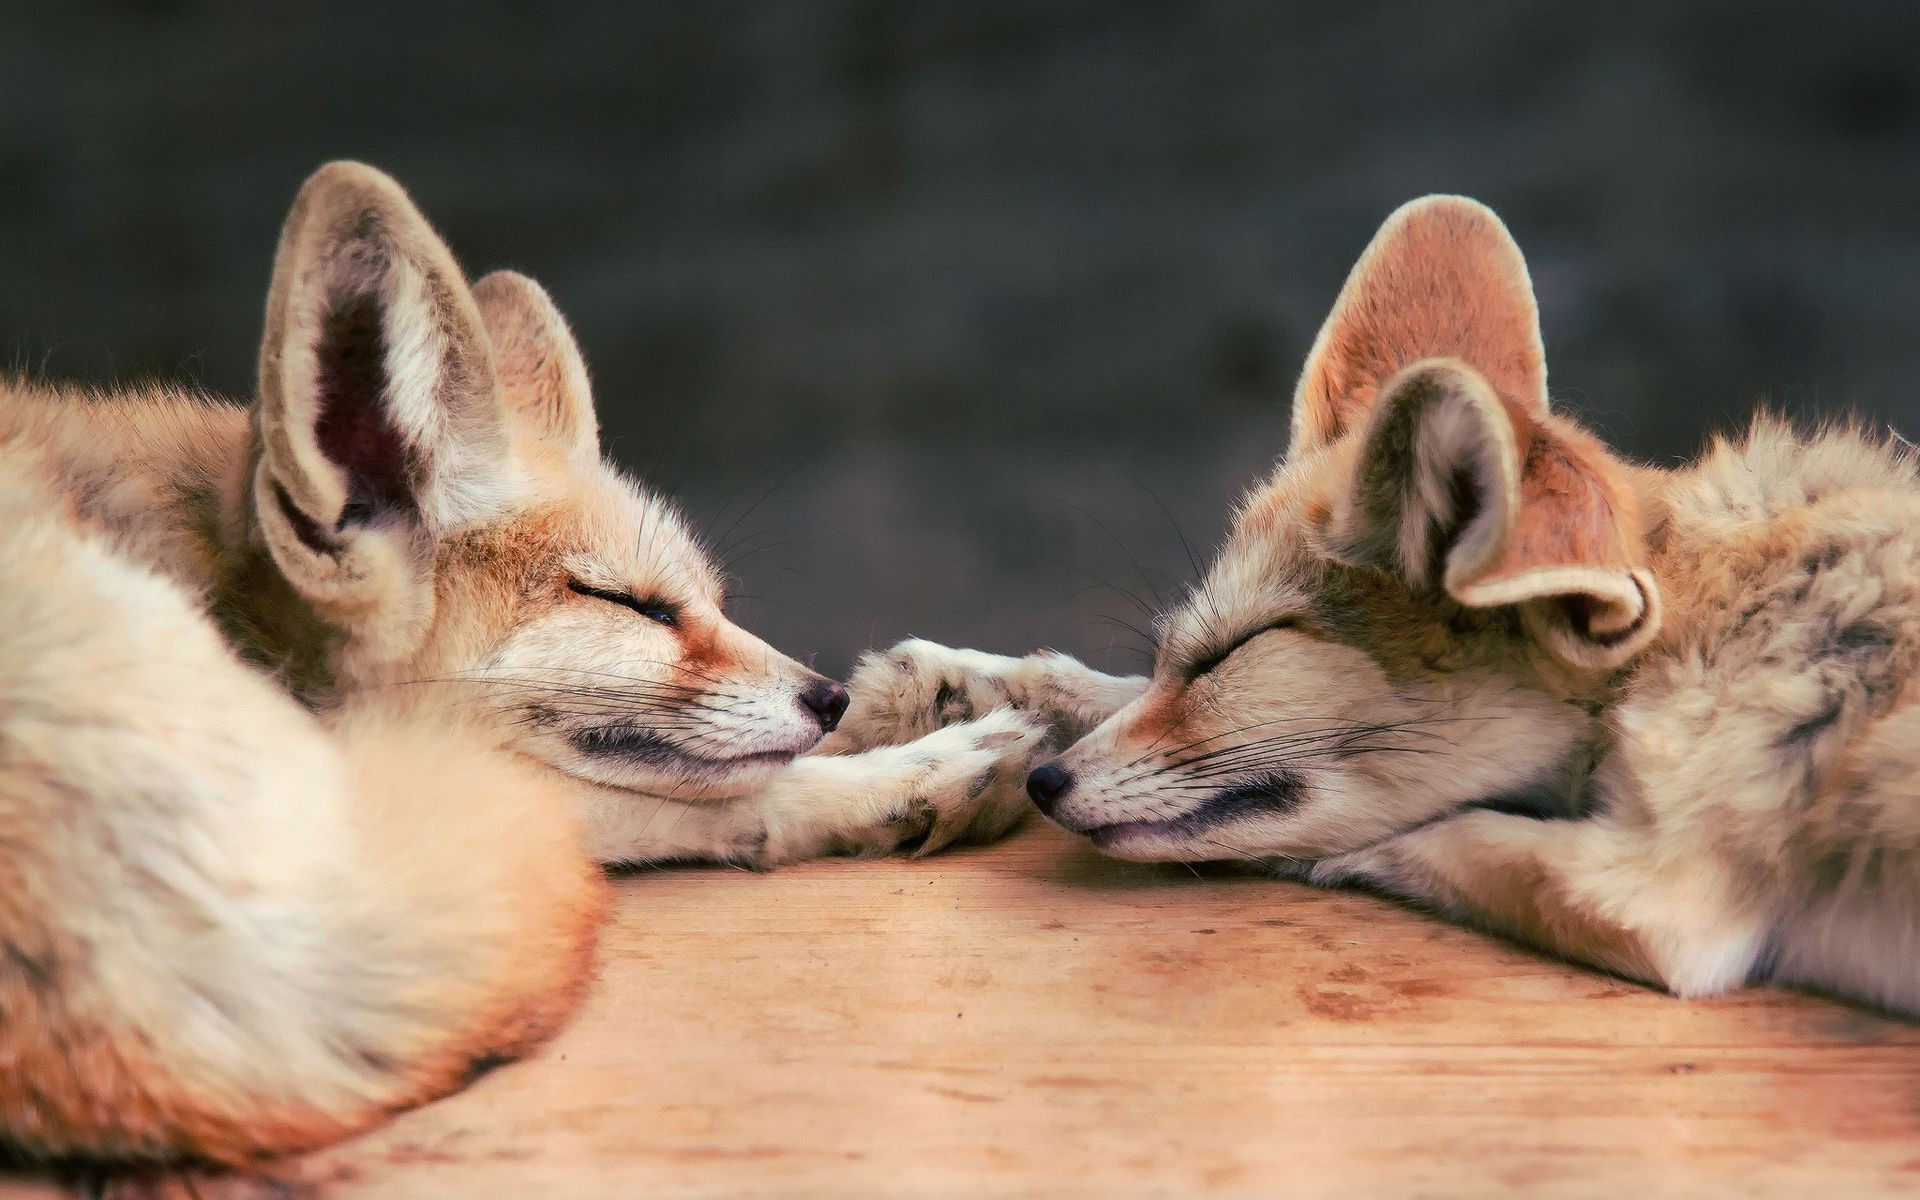 Cute Sleeping Baby Wallpapers Fox Baby Animals Animals Sleeping Wallpapers Hd